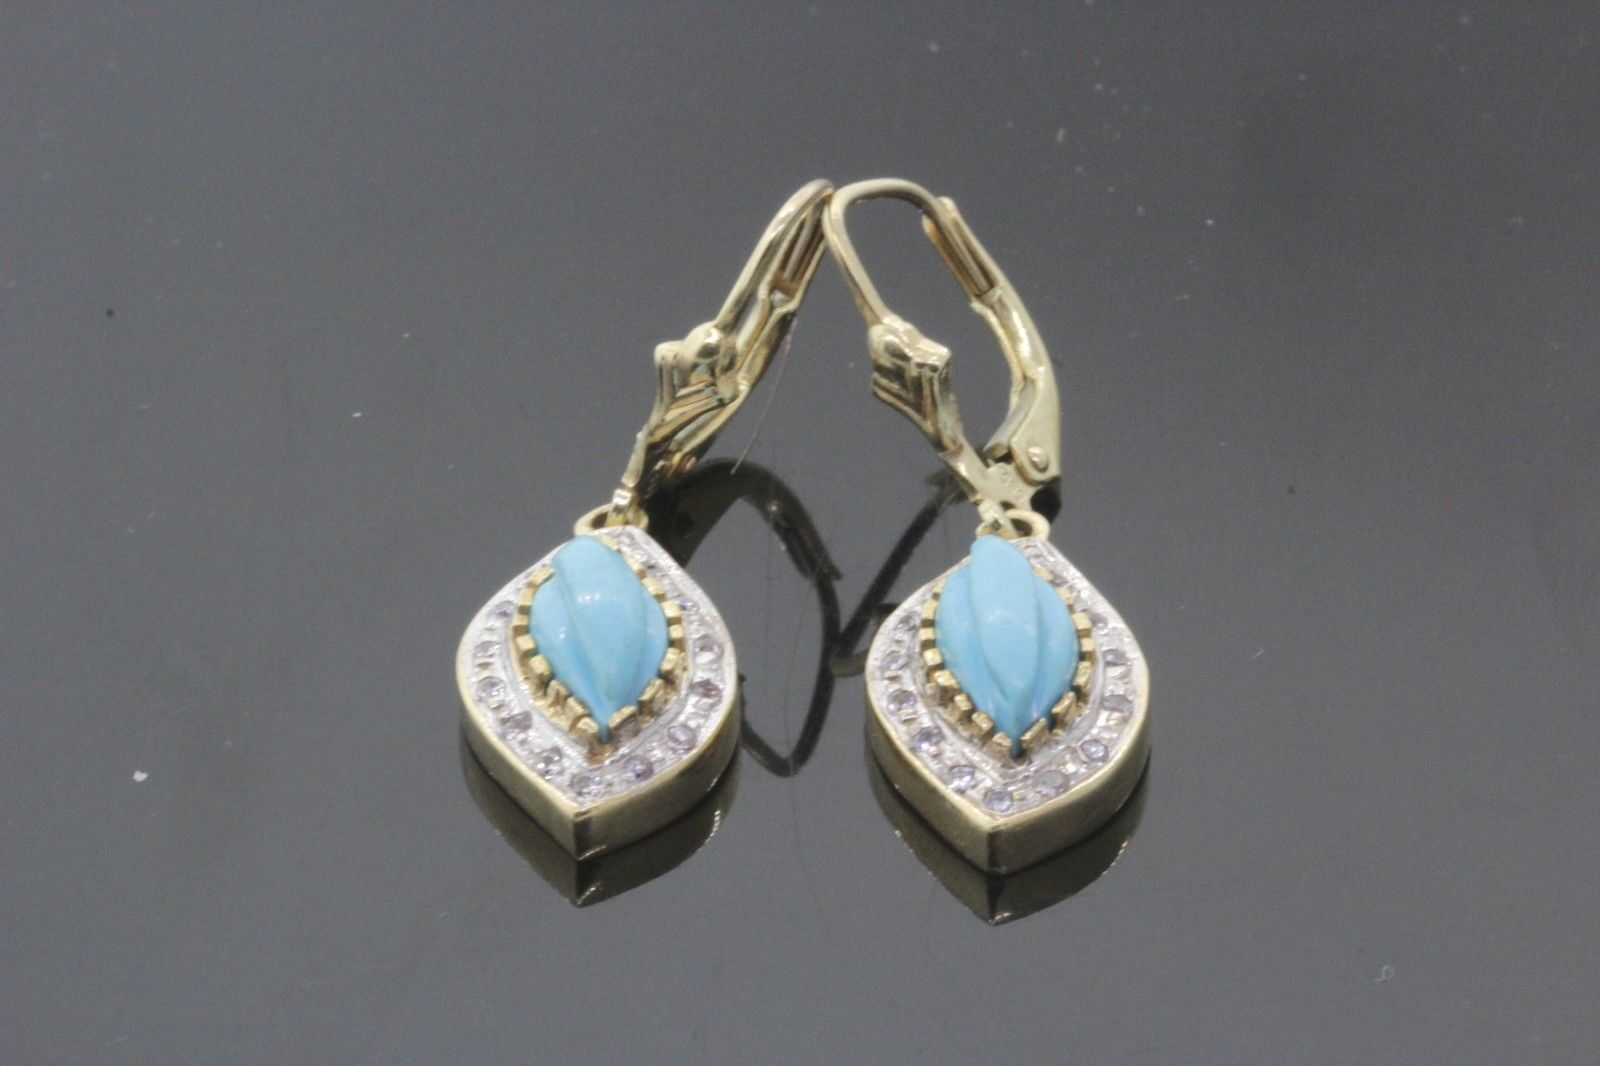 Women's 14k Yellow gold Turquoise & Diamond Earrings 5.9g 0.20tcw G-H SI1